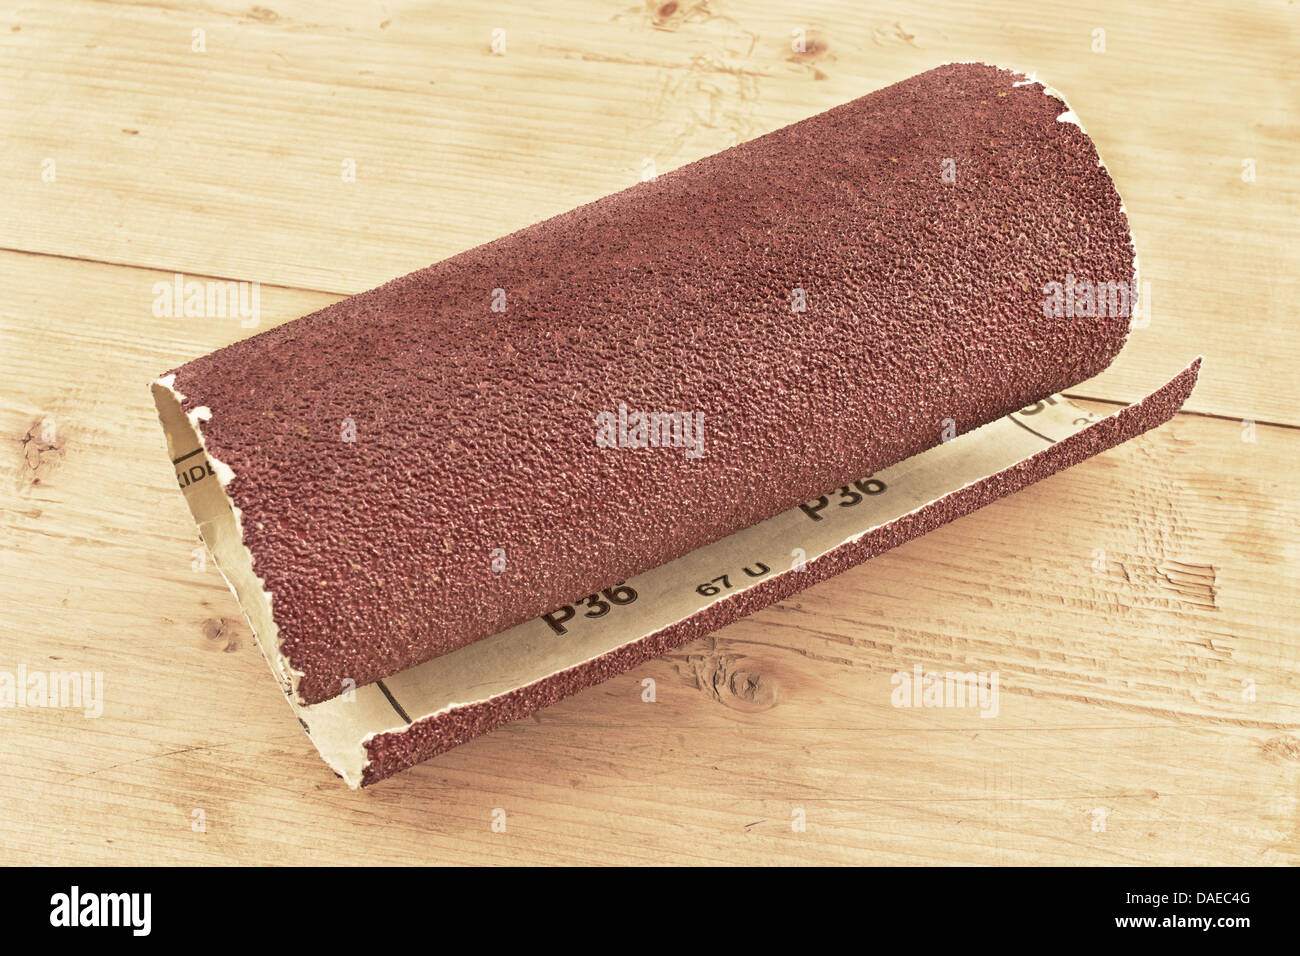 Emery paper - sandpaper on wooden board - Stock Image